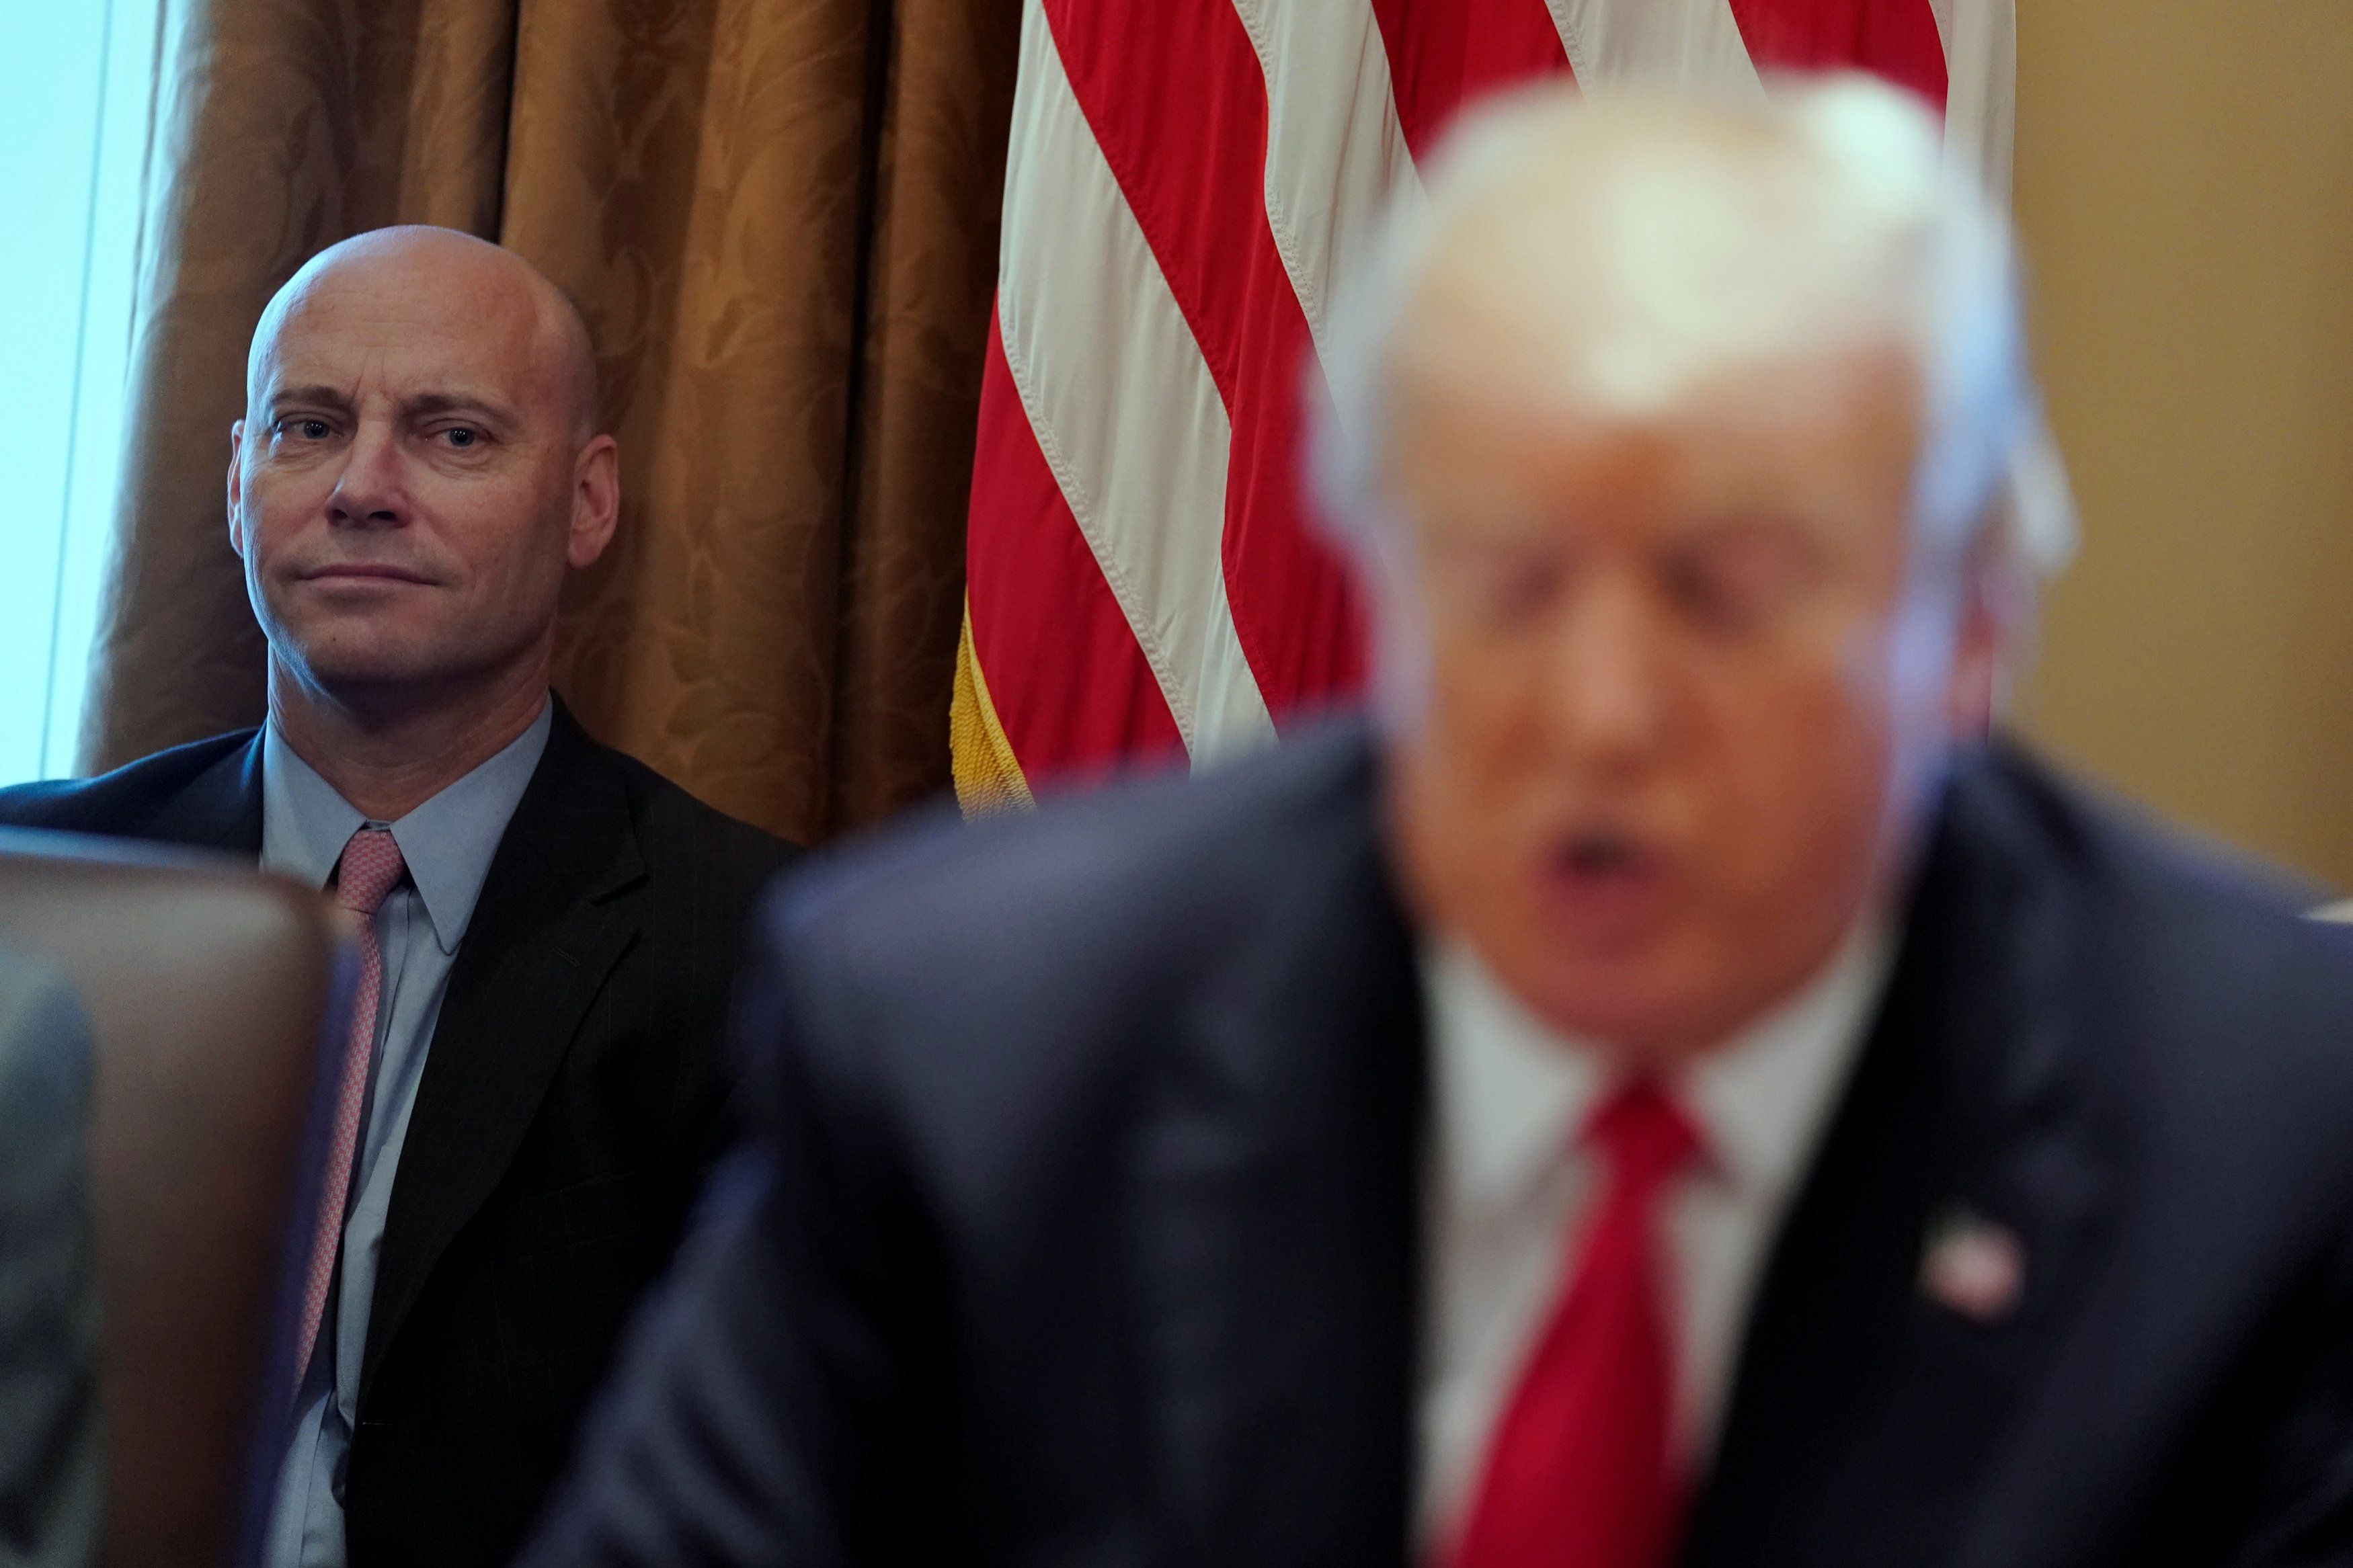 White House Director of Legislative Affairs Marc Short looks on as U.S. President Donald Trump delivers remarks before a cabinet meeting at the White House in Washington, U.S., January 10, 2018.  REUTERS/Jonathan Ernst